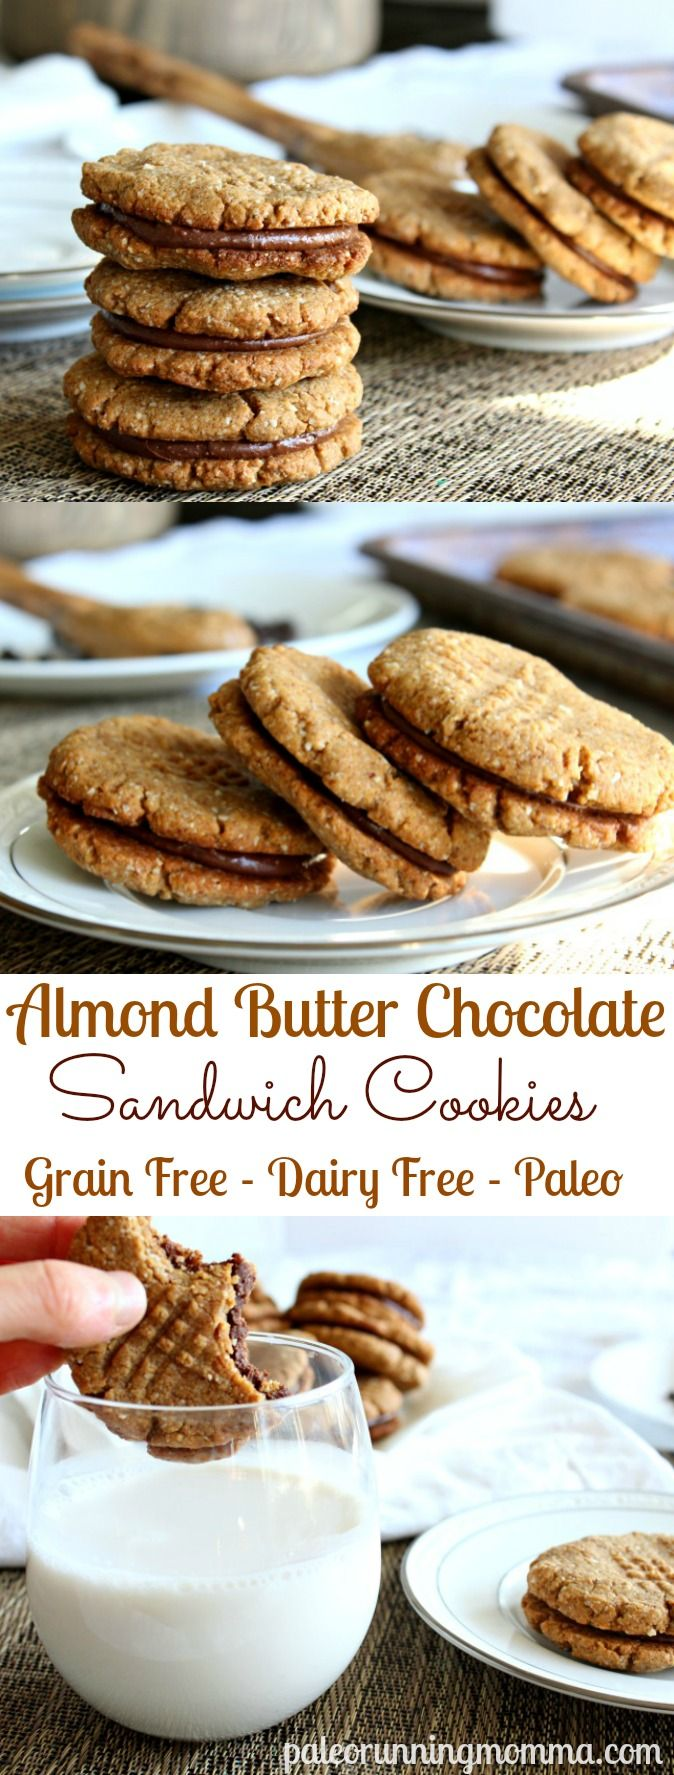 Amazingly Chewy and delicious Paleo Almond Butter Chocolate Sandwich Cookies that are grain free, gluten free, dairy free. You won't believe how easy they are to make!